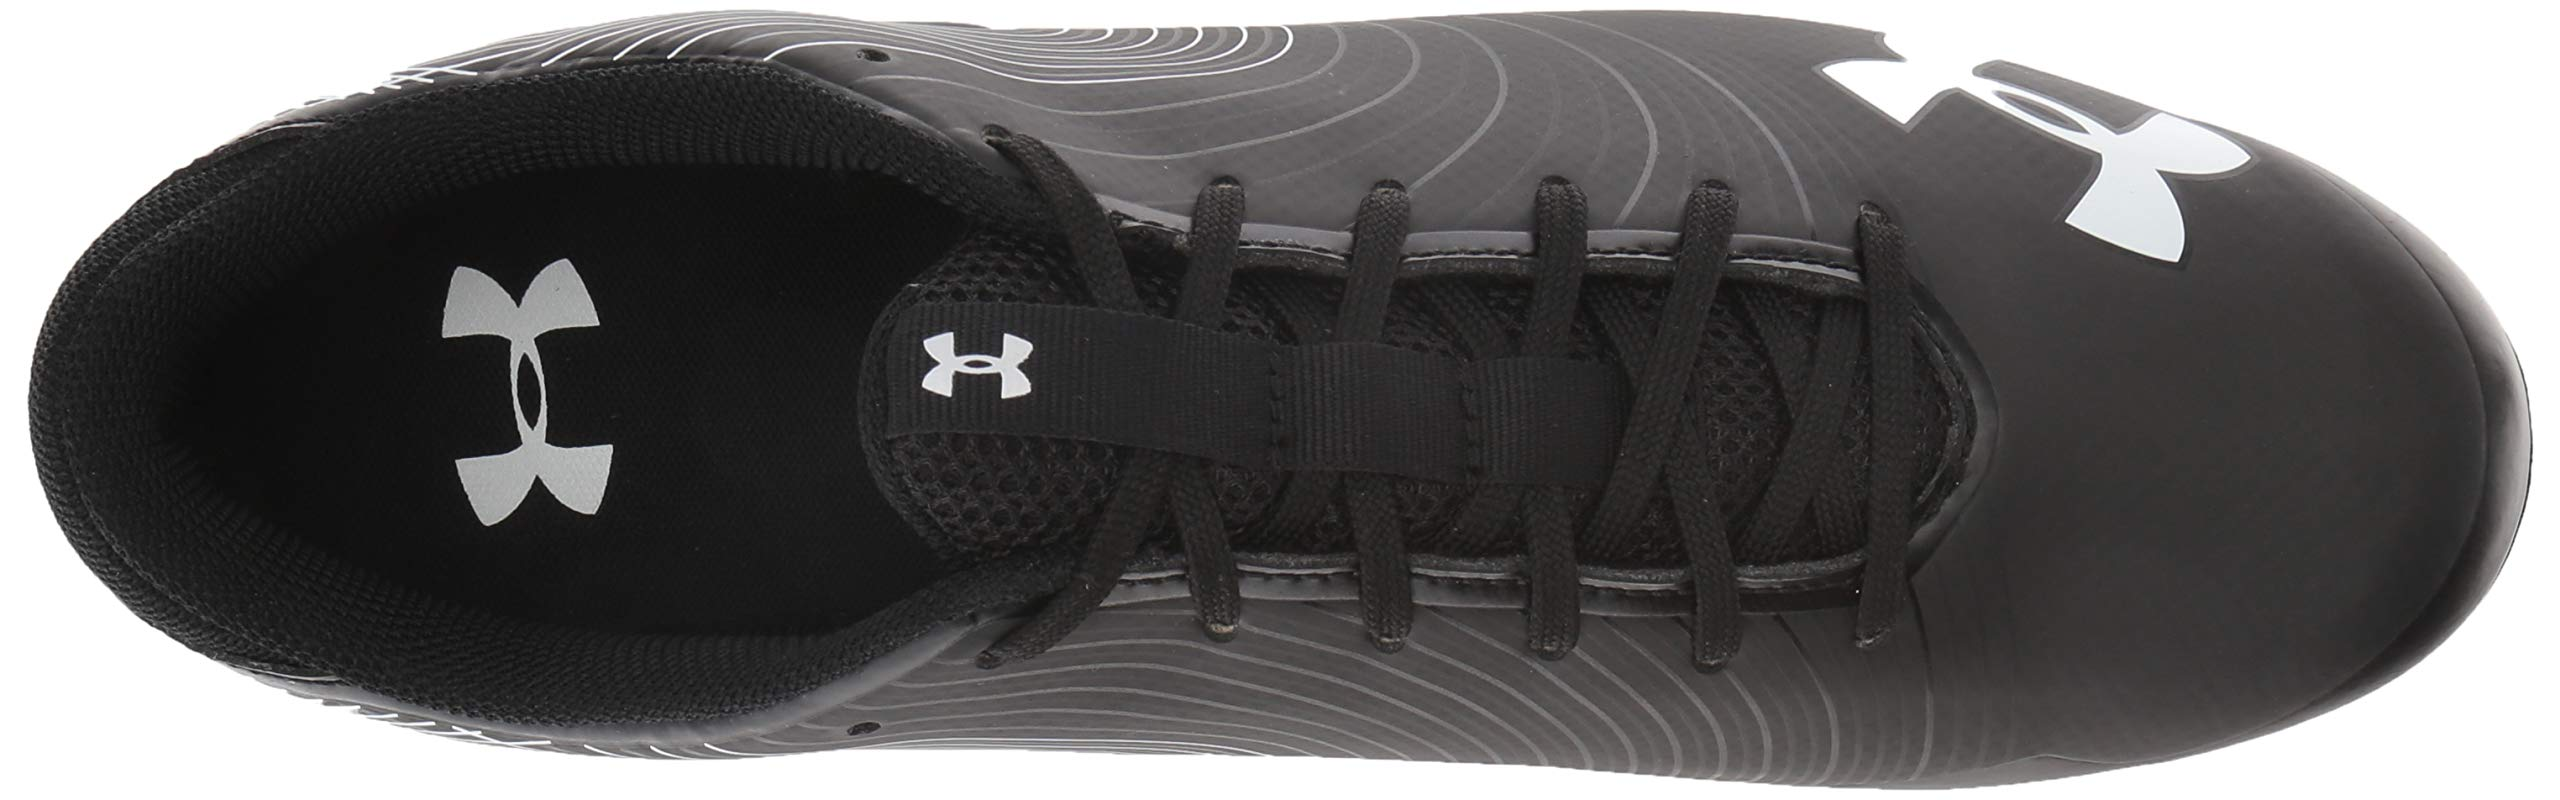 Under Armour Men's Speed Phantom MC Football Shoe Black (001)/White 6.5 by Under Armour (Image #8)